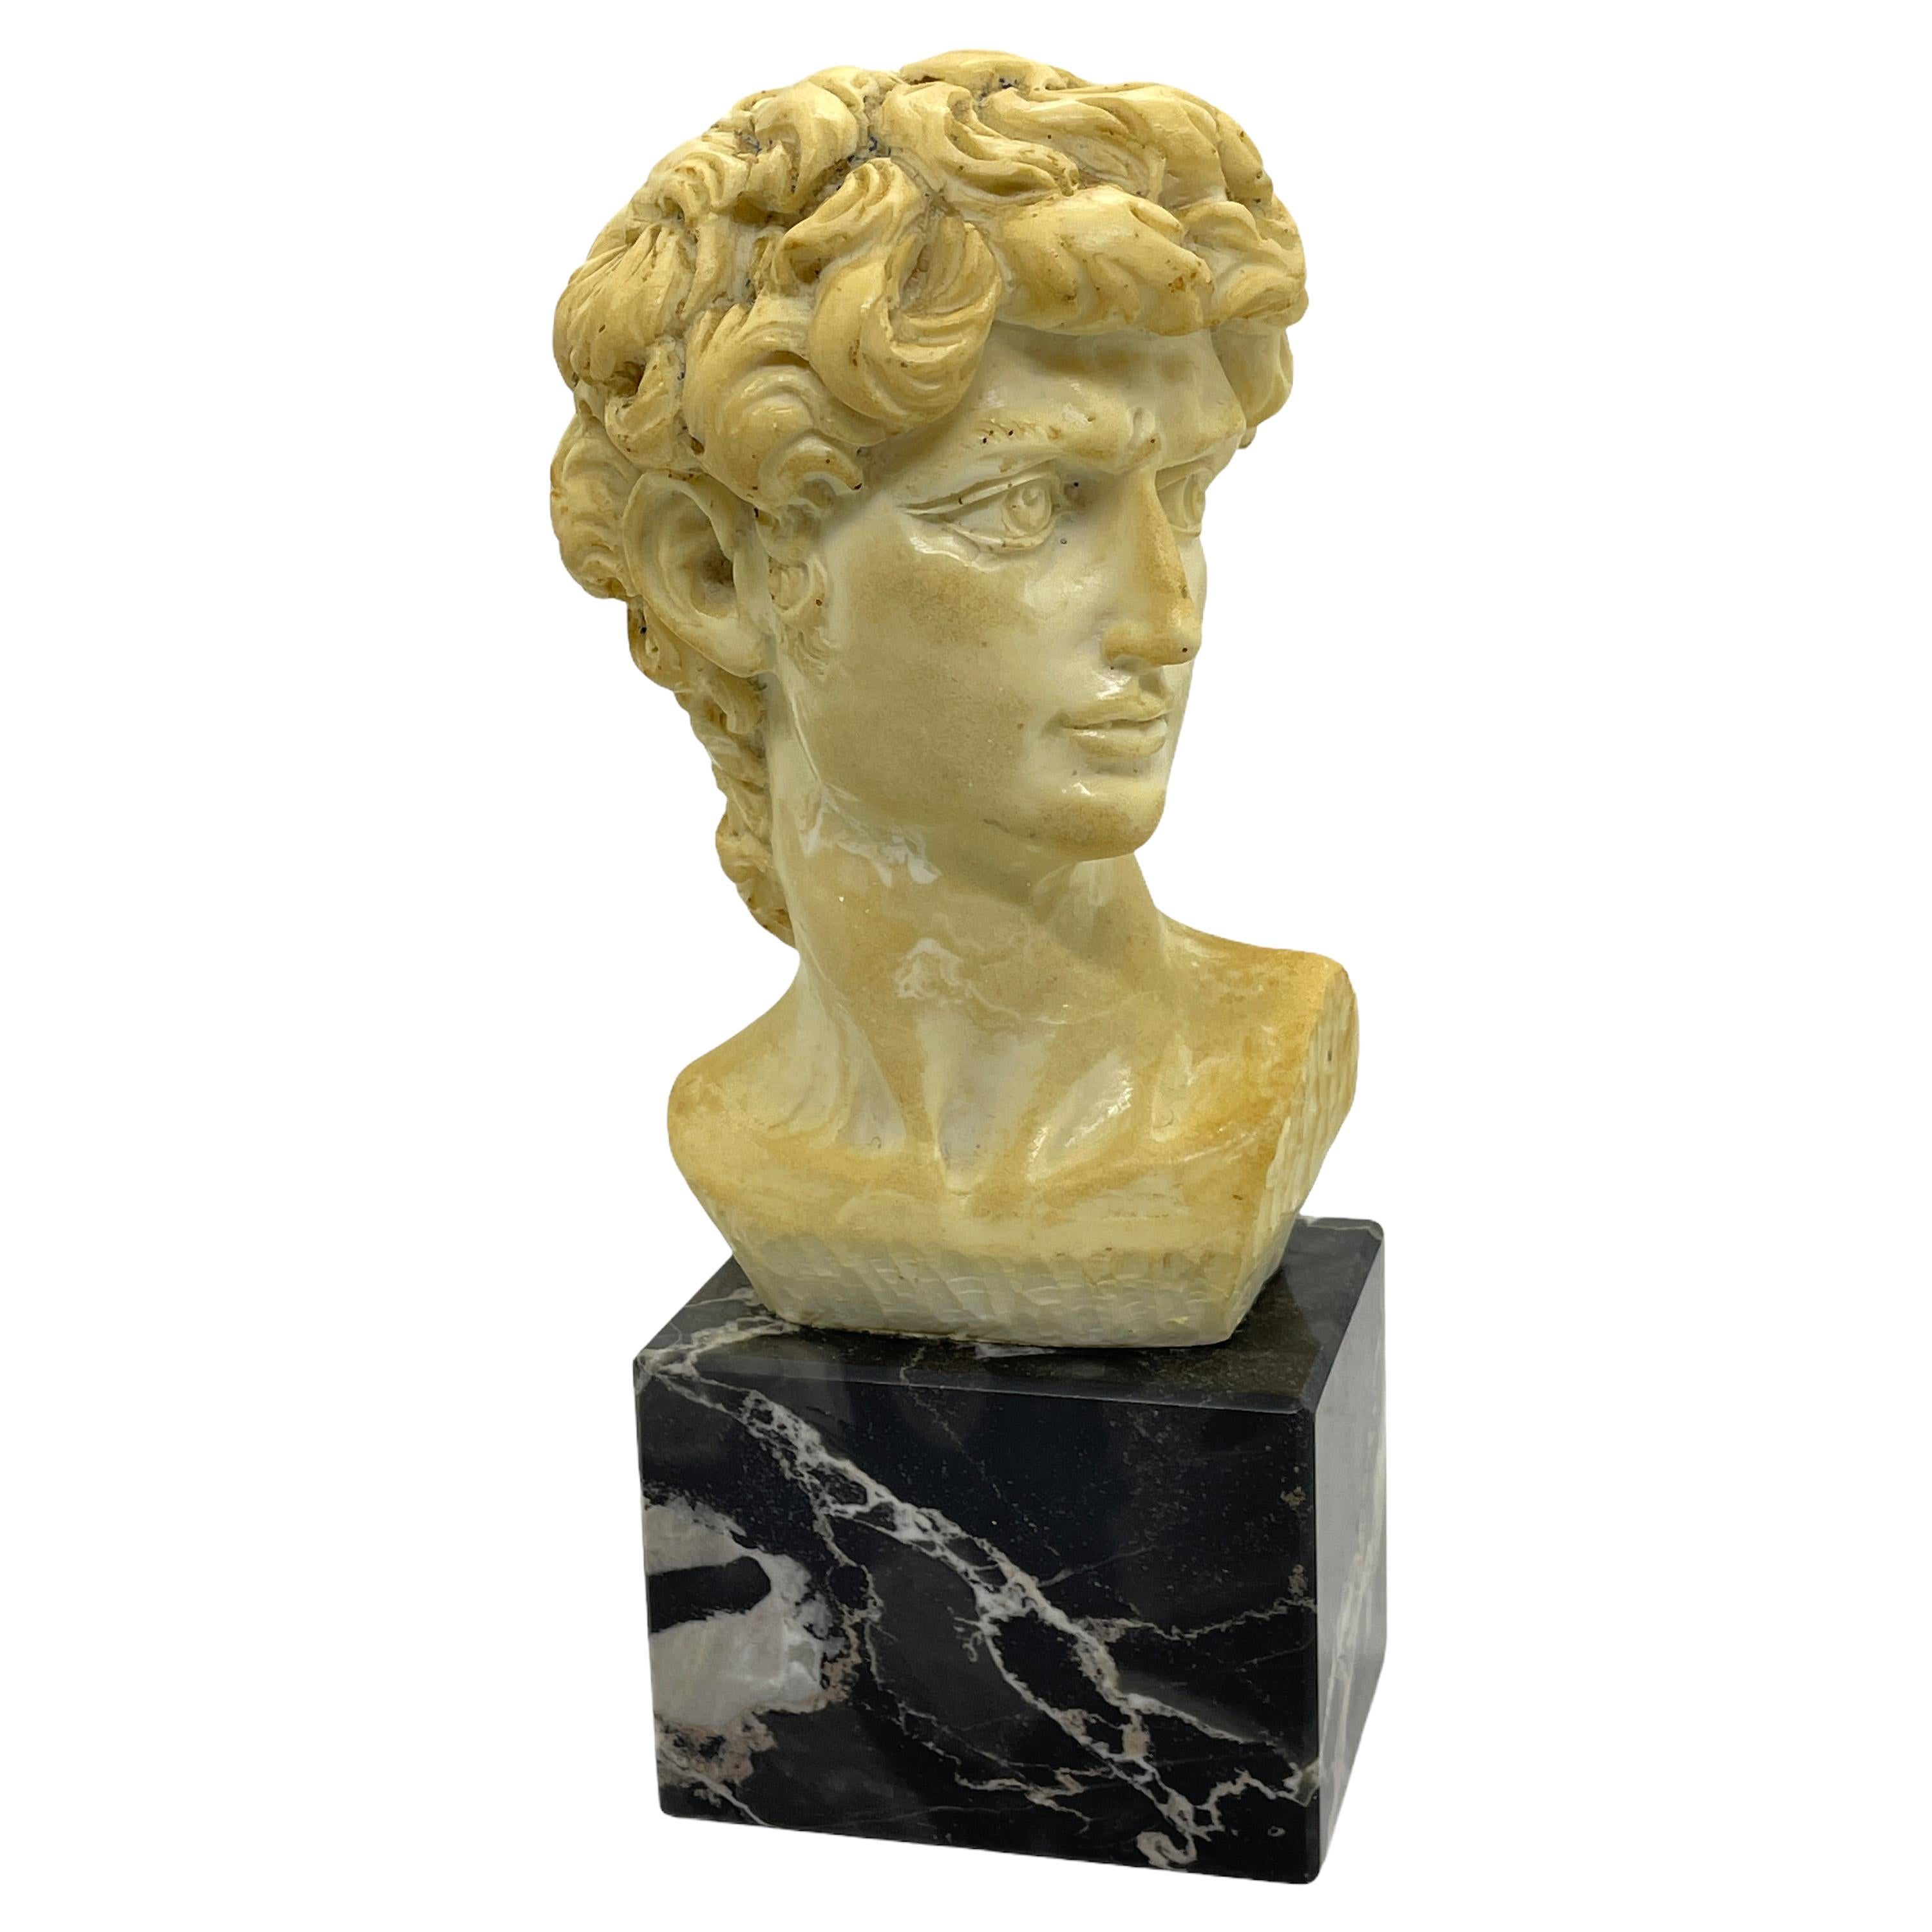 Vintage Decorative Roman or Greek Bust Statue on Marble Base, 1960s